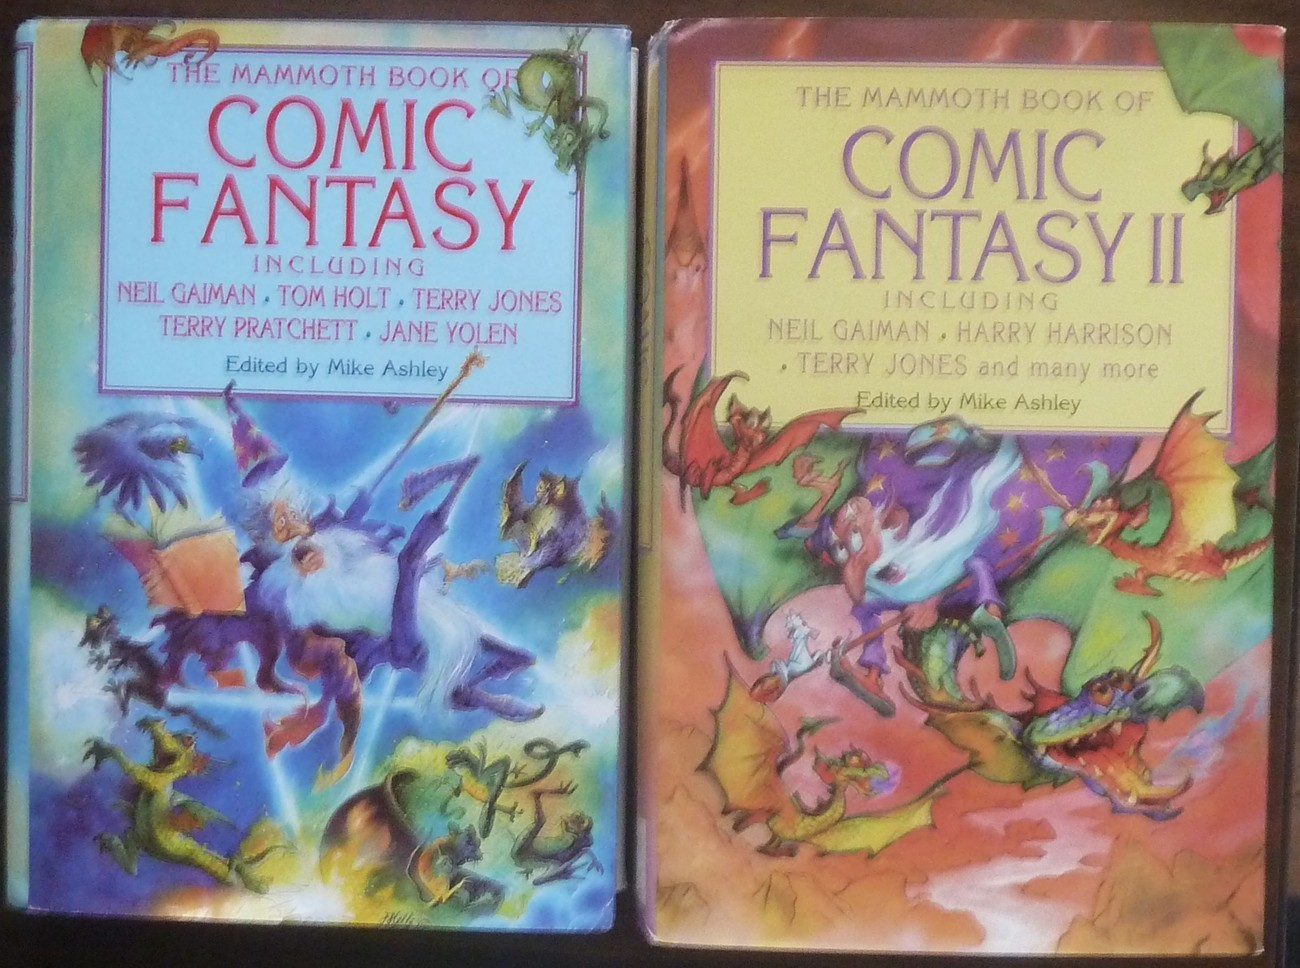 The Mammoth Book of Comic Fantasy volumes I and II Edited by Mike Ashley